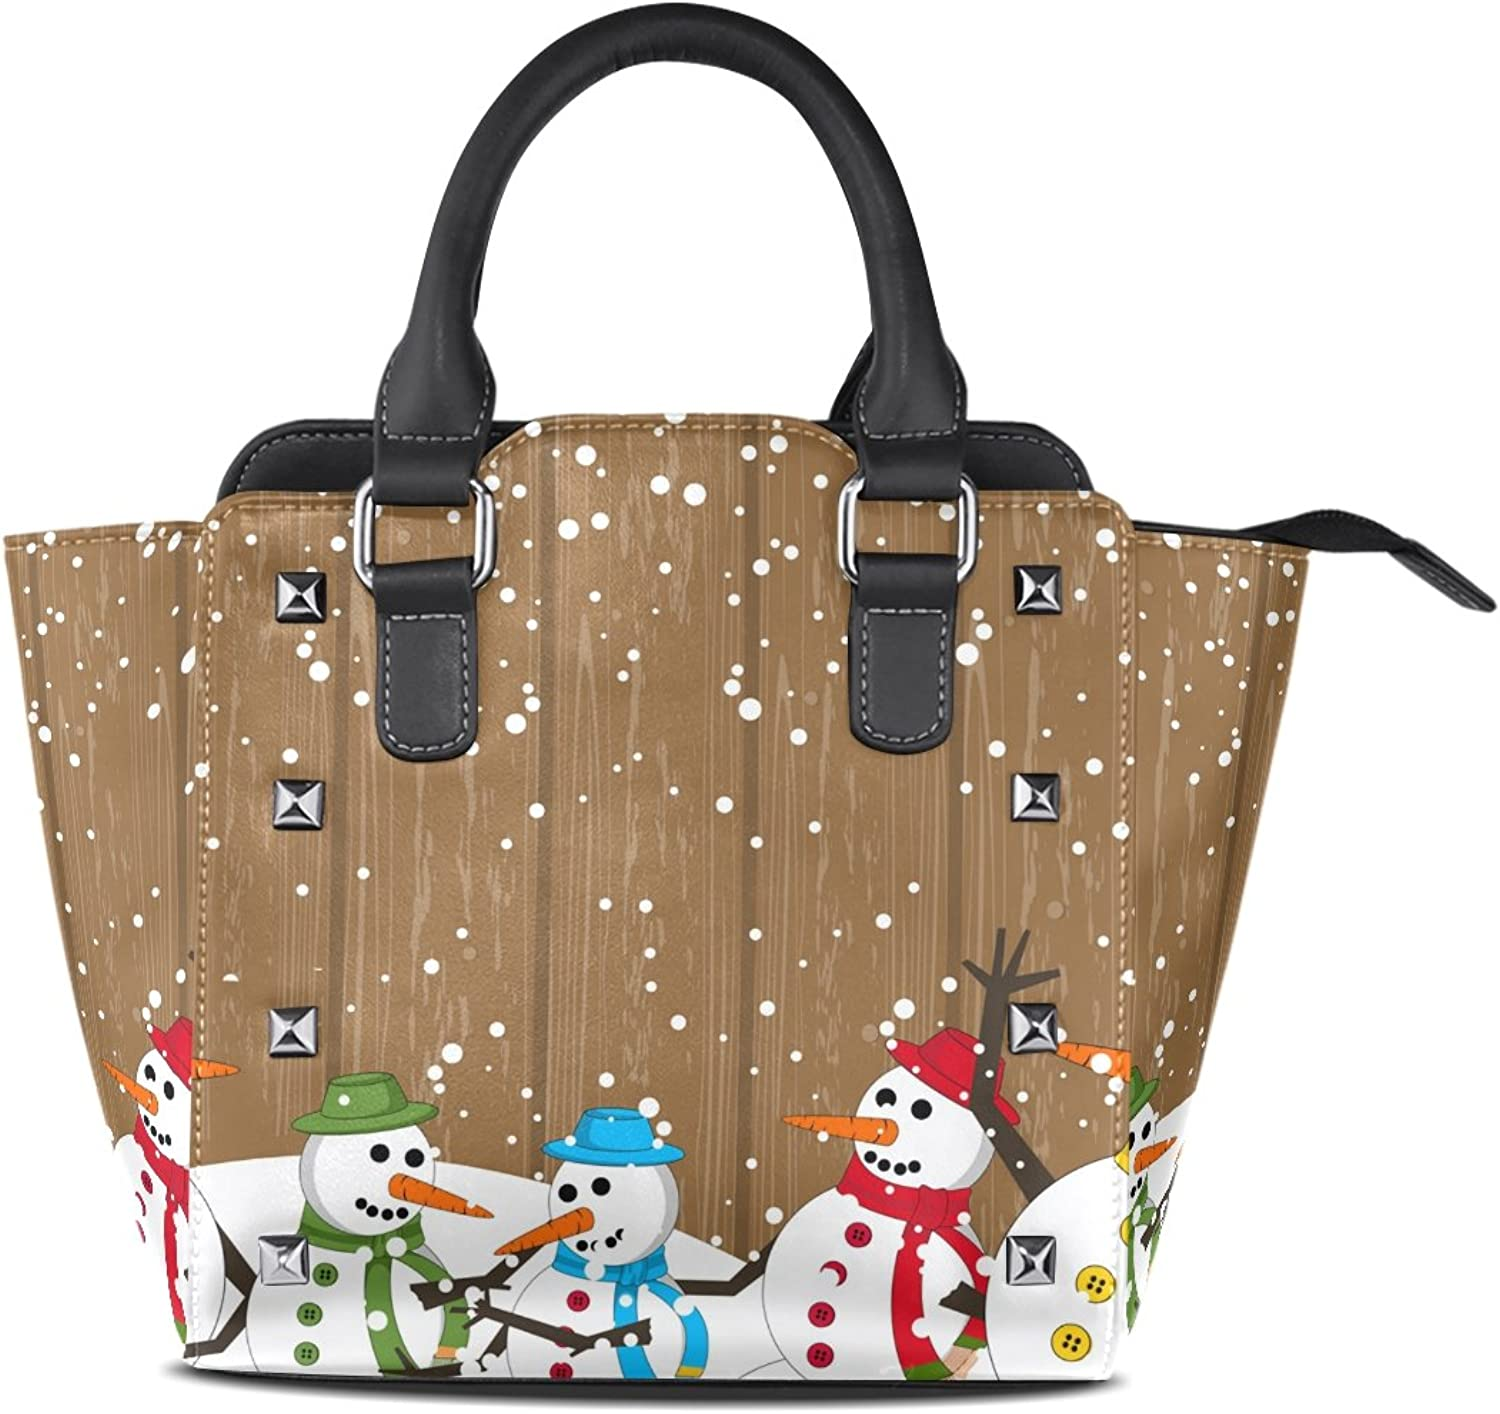 Sunlome Merry Christmas colorful Snowman Print Handbags Women's PU Leather Top-Handle Shoulder Bags